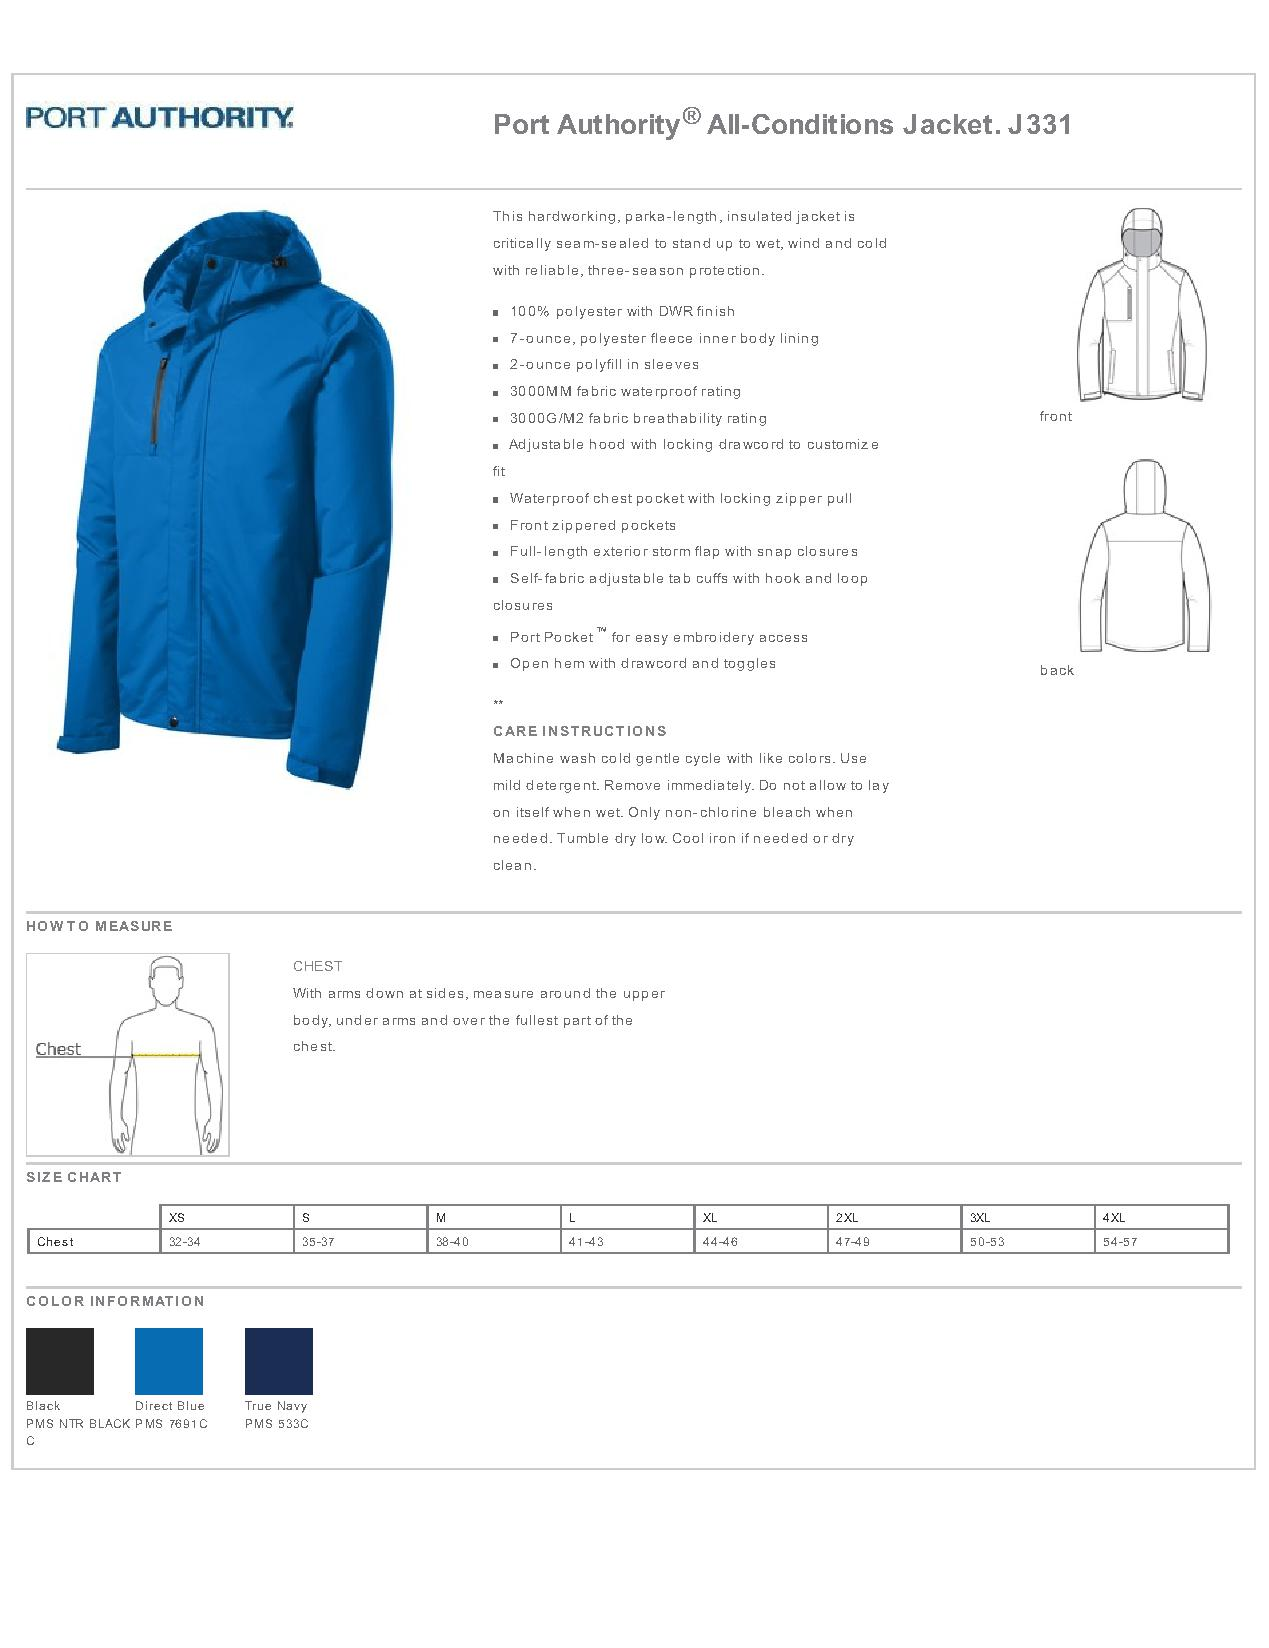 6417a7d0719 Port Authority J331 - All-Conditions Jacket - Outerwear